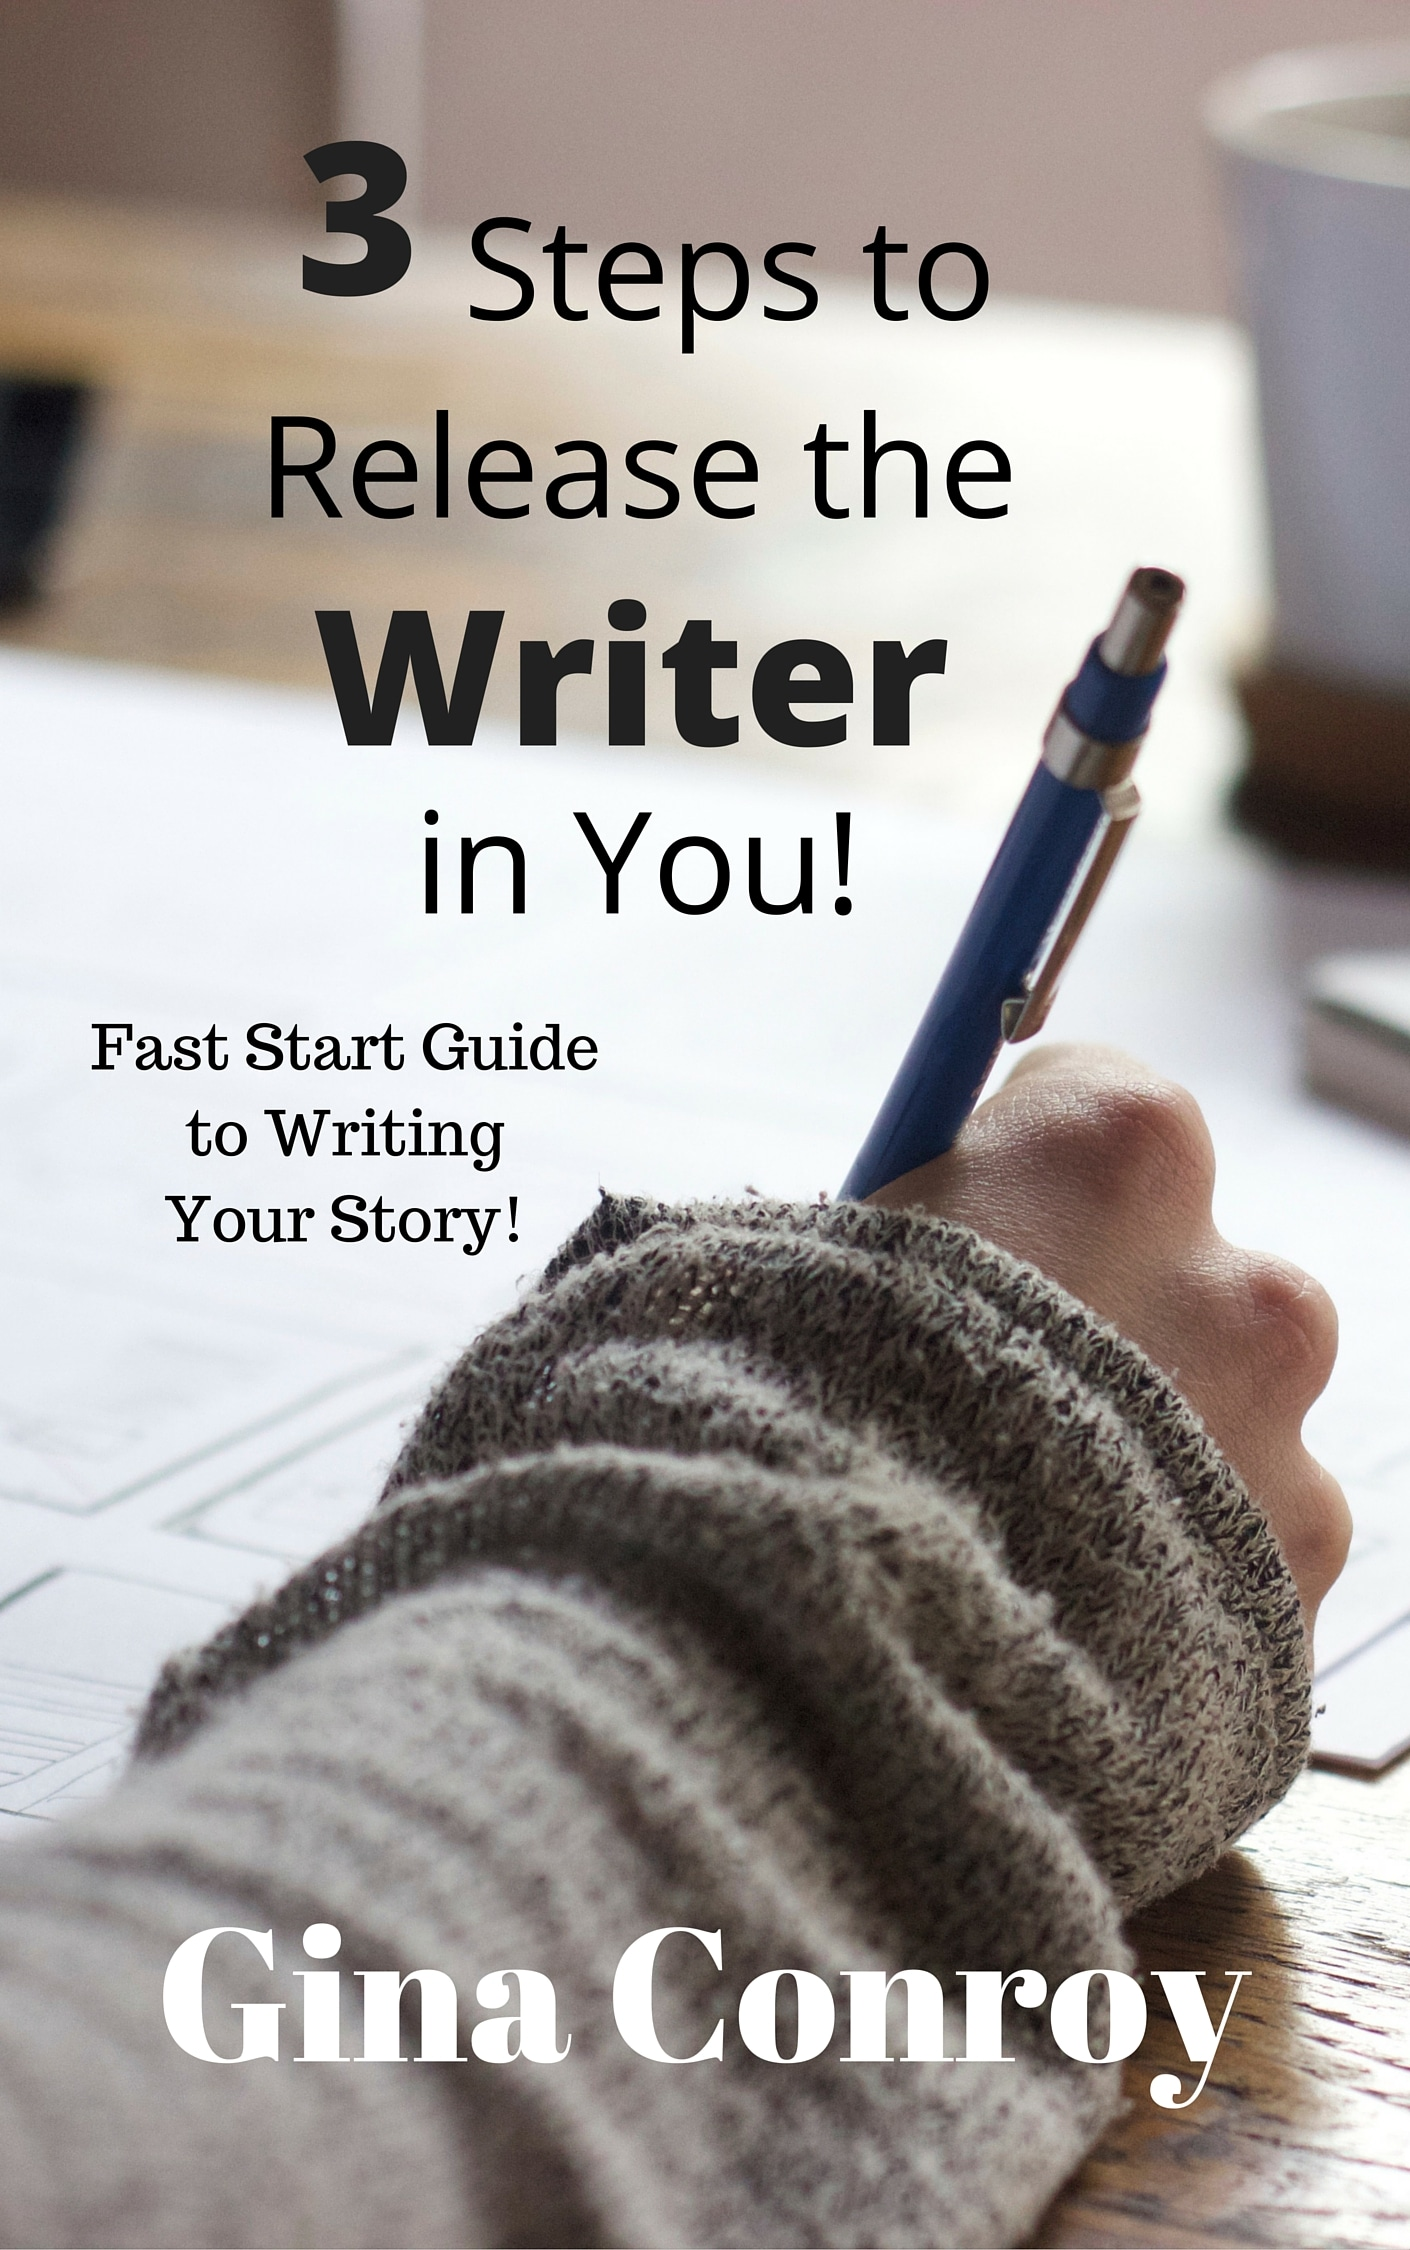 3 Steps To Release the Writer in You! Fast Start Guide to Writing Your Story!